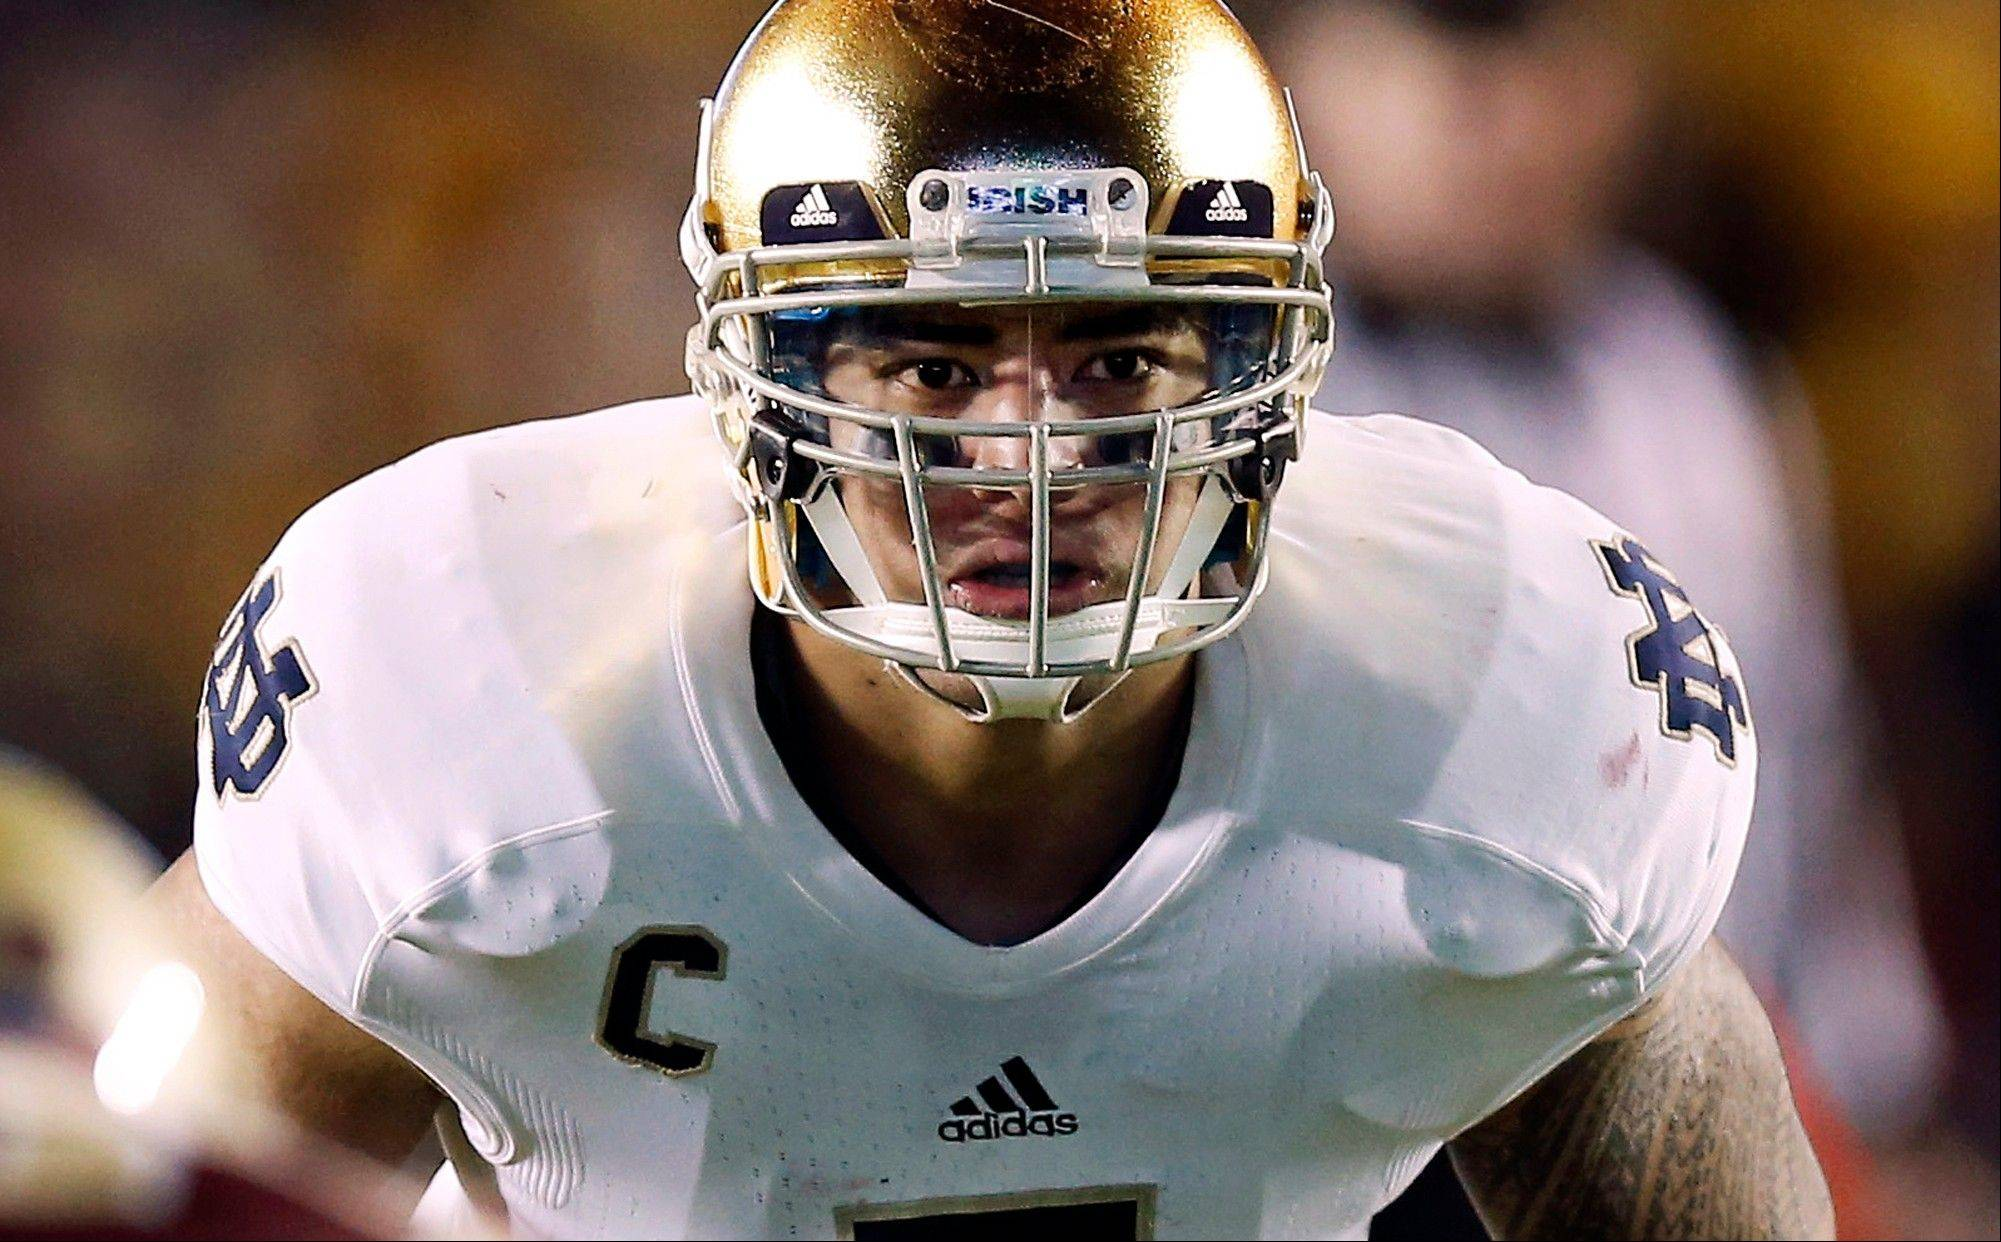 In this Nov. 10, 2012, file photo, Notre Dame linebacker Manti Te'o waits for the snap during the second half of their NCAA college football game against Boston College in Boston.